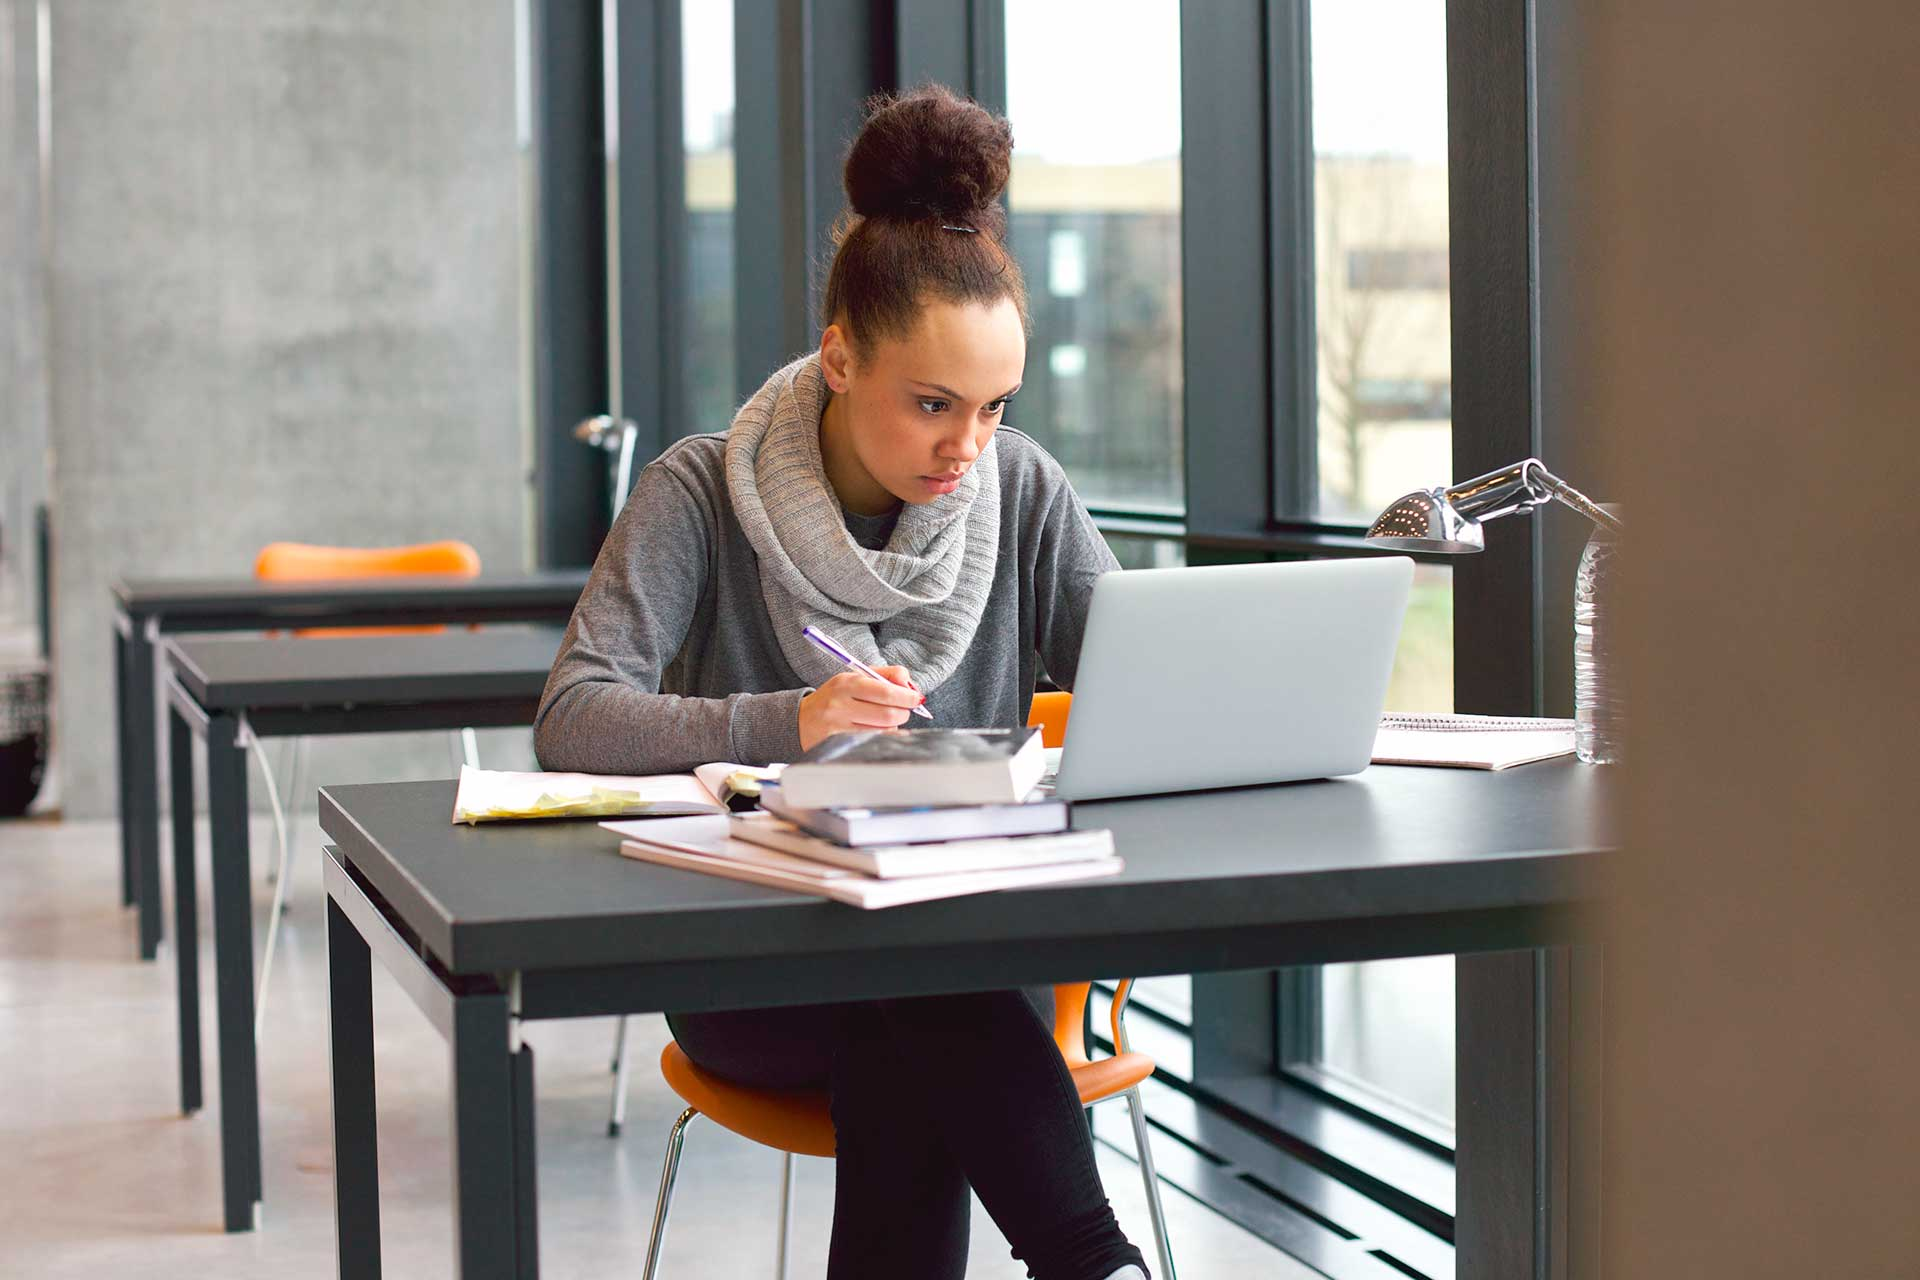 Female student taking notes at study desk with laptop